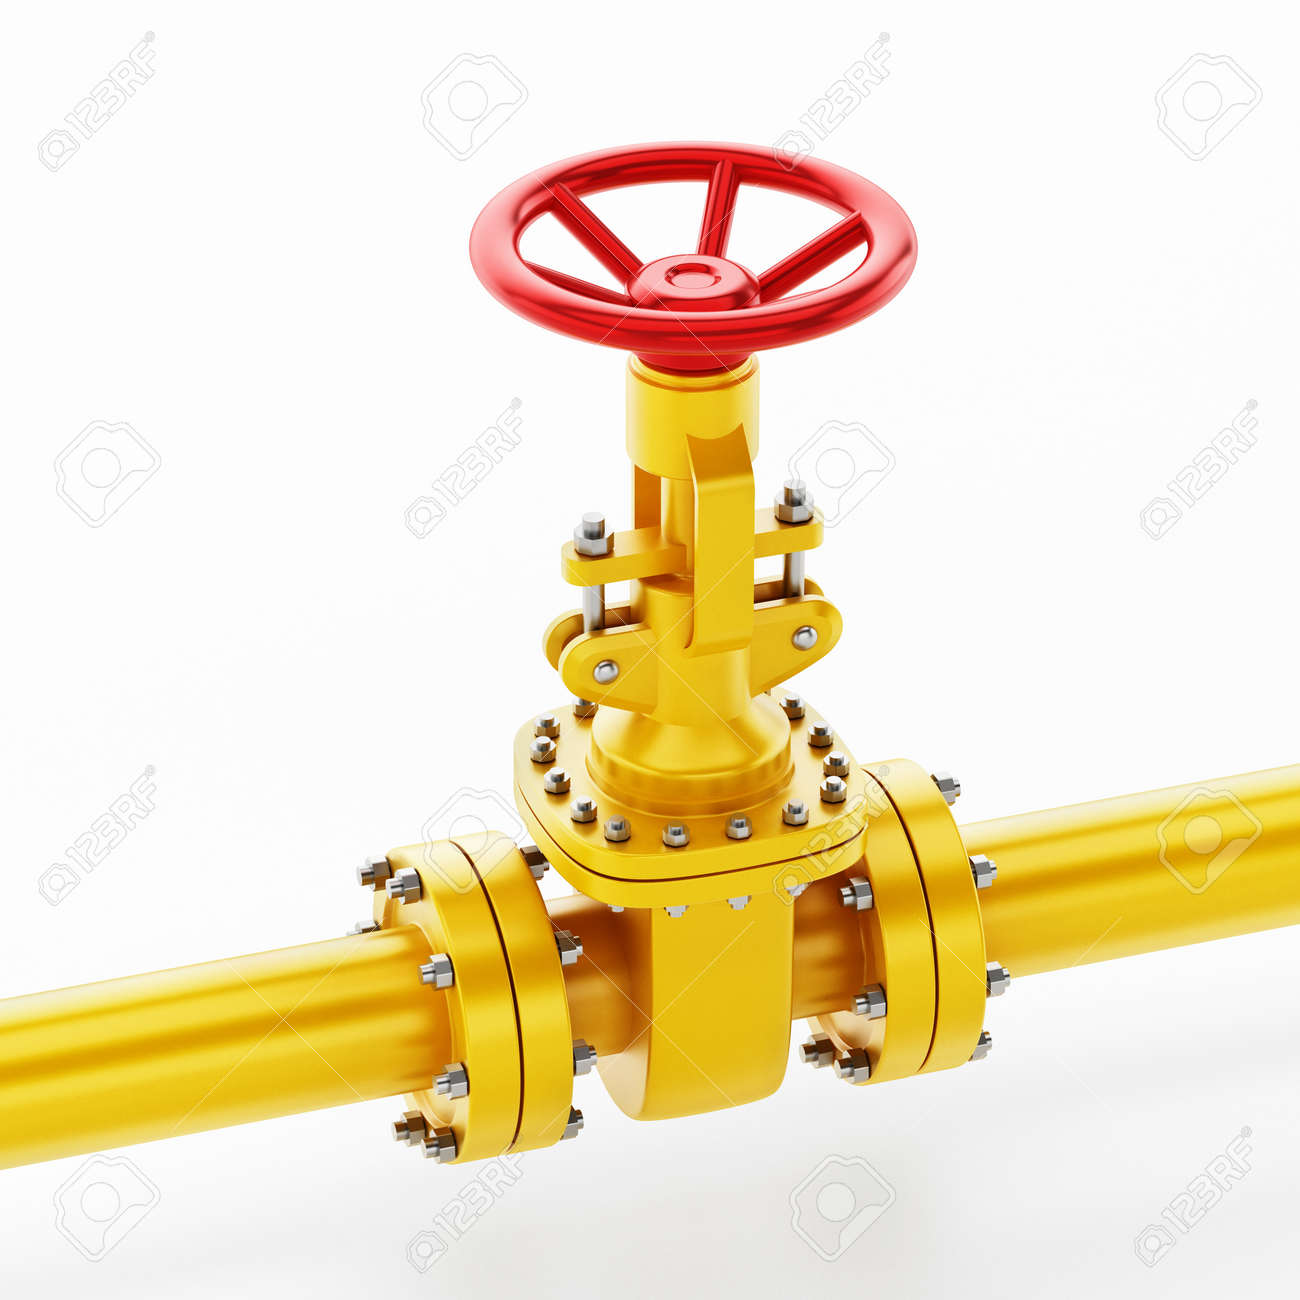 Yellow oil pipe with valve isolated on white background. 3D illustration. - 172447466